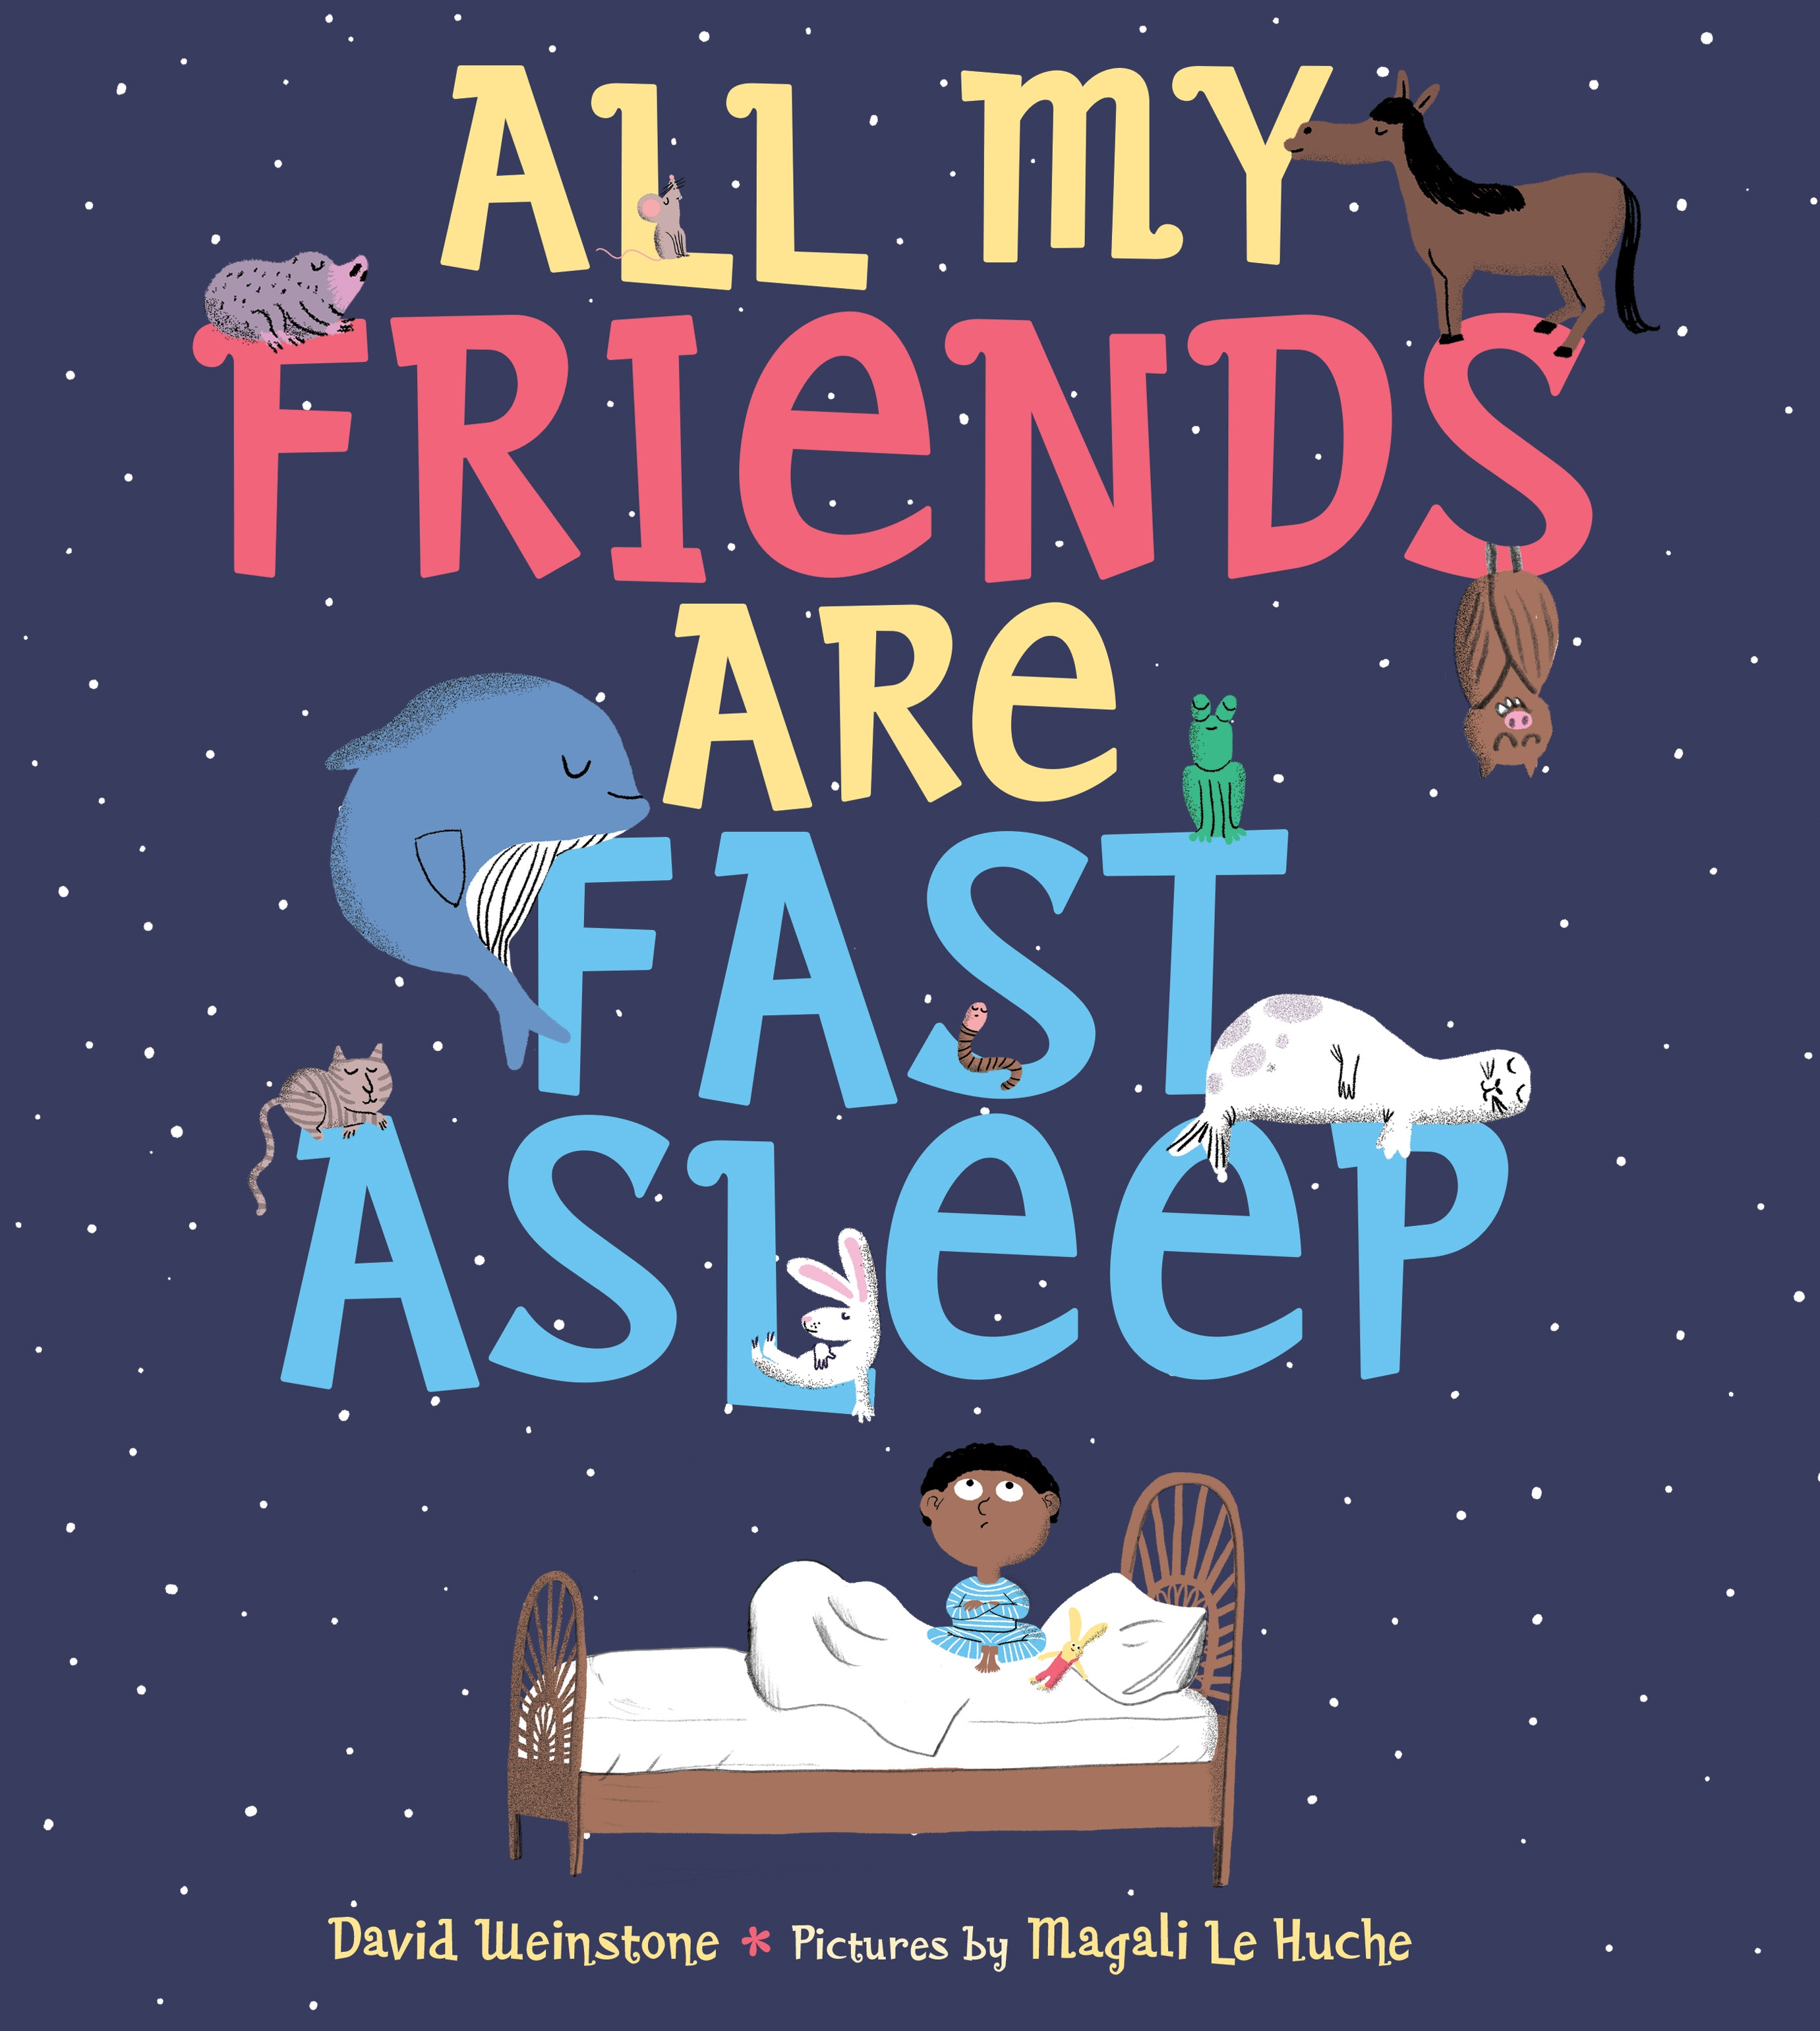 Sunday Story Time with David Weinstone (Author of All My Friends Are Fast Asleep)